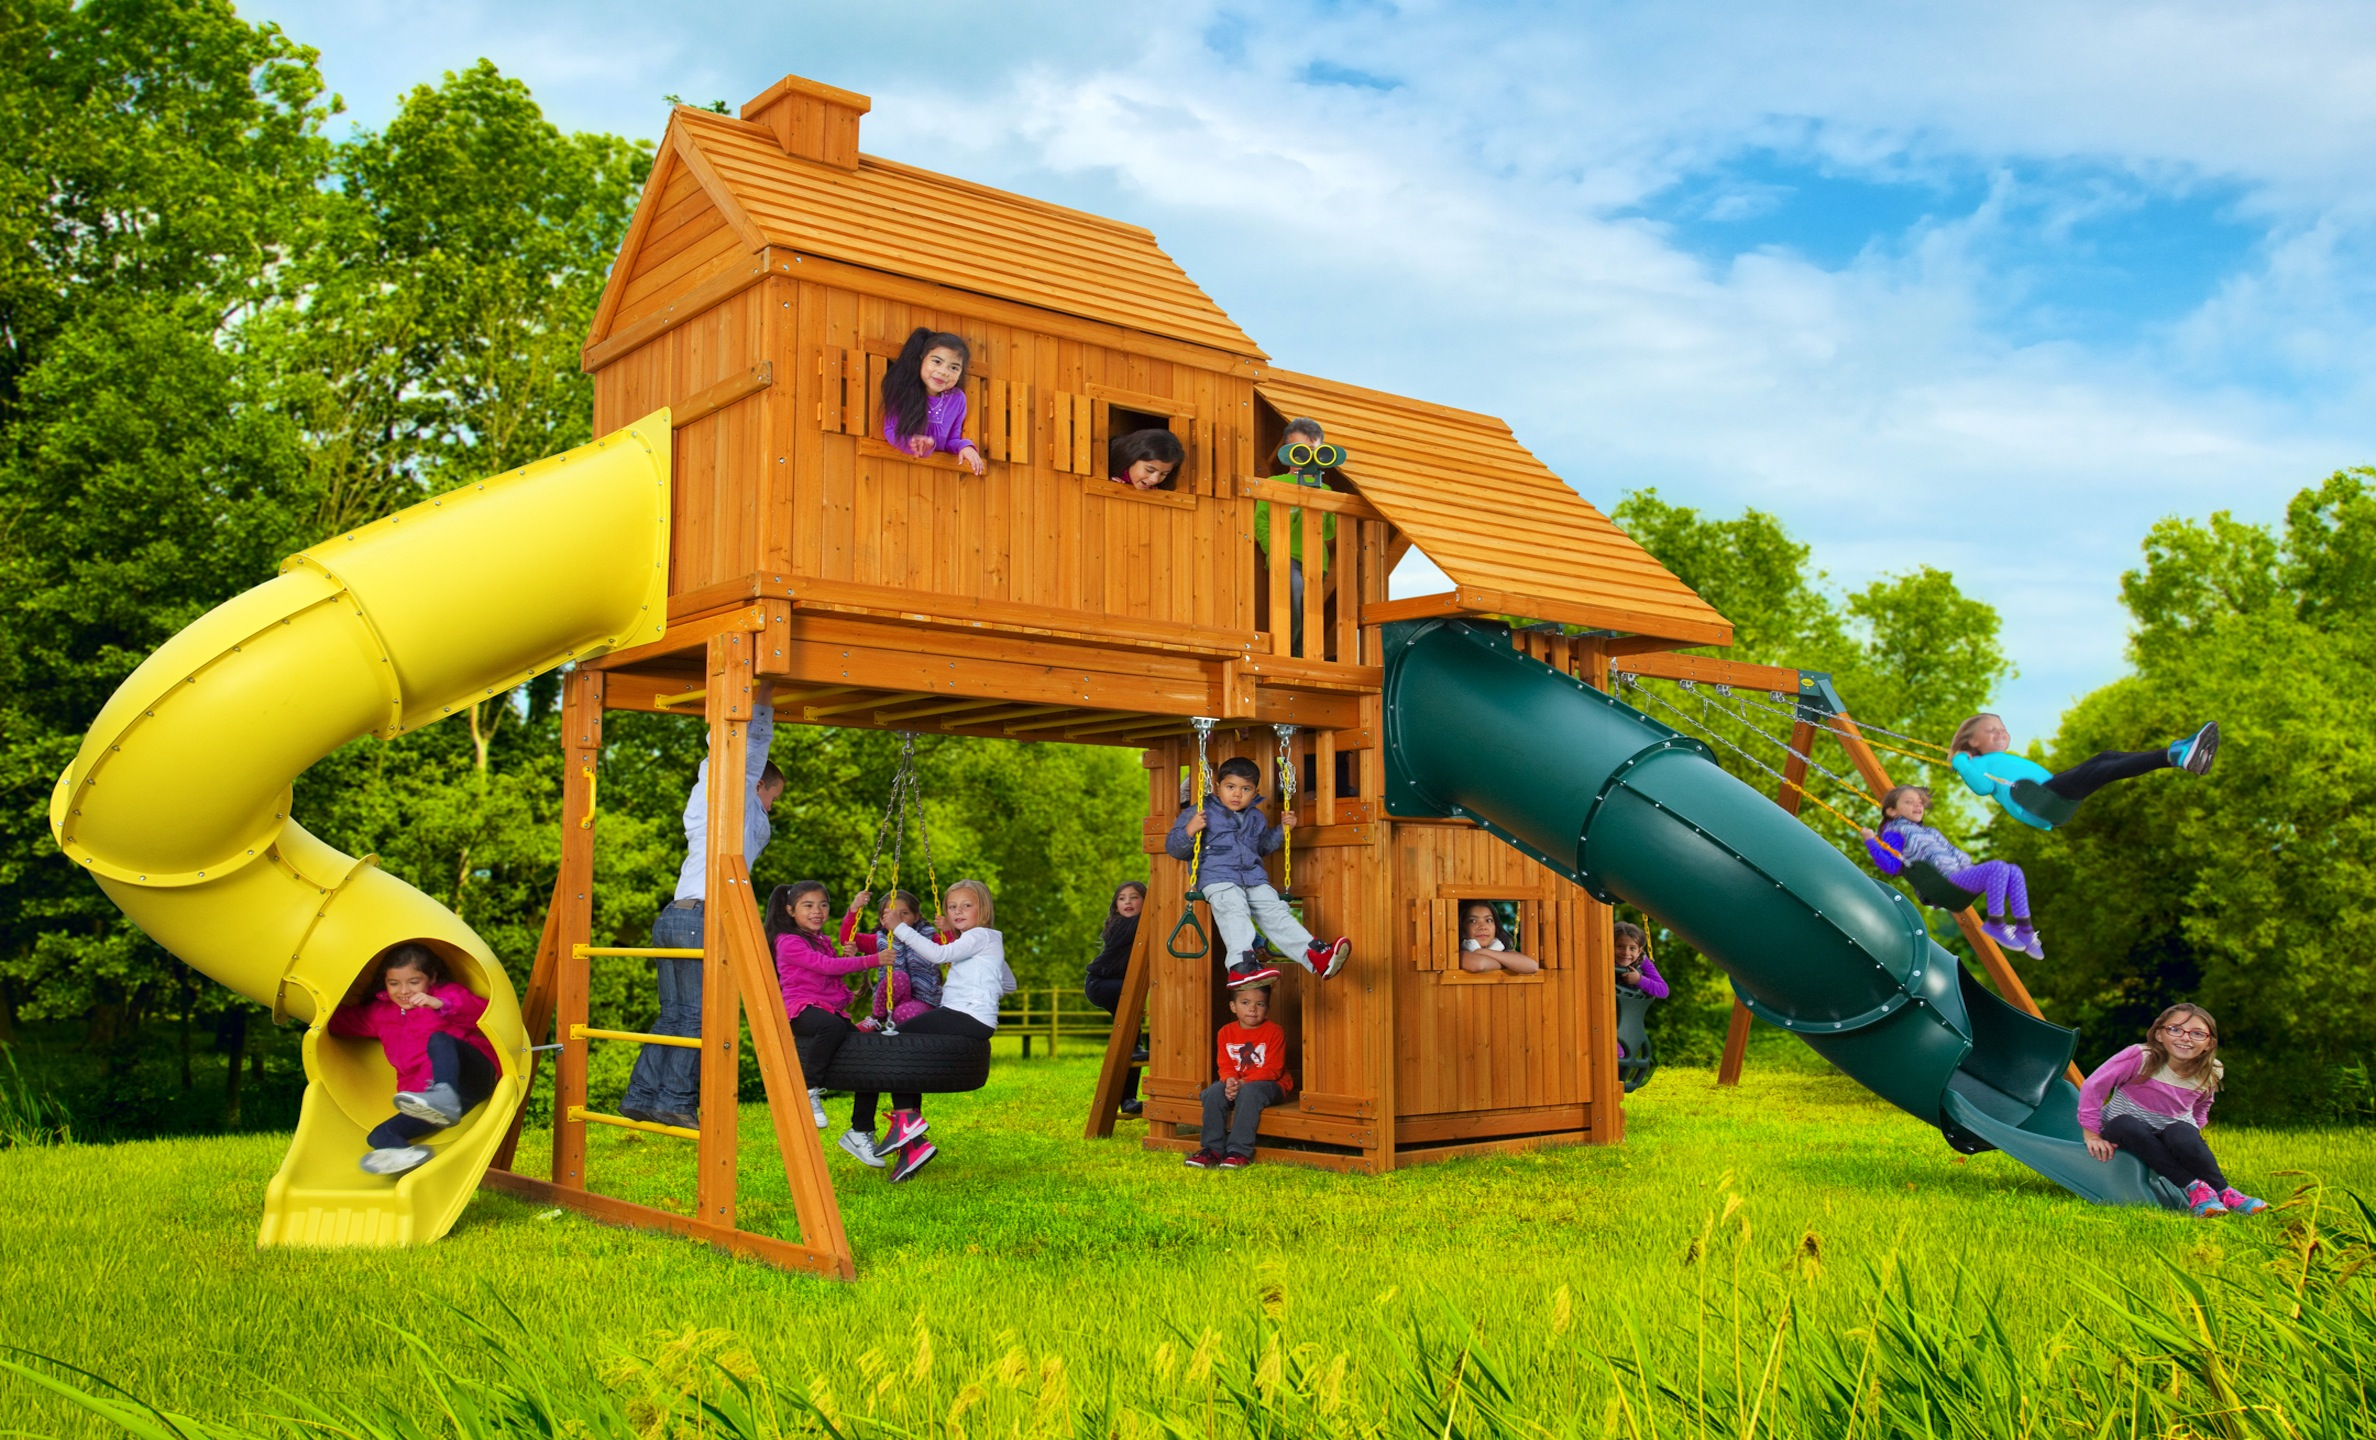 Fantasy tree house jungle gyms canada for Tree house swing set